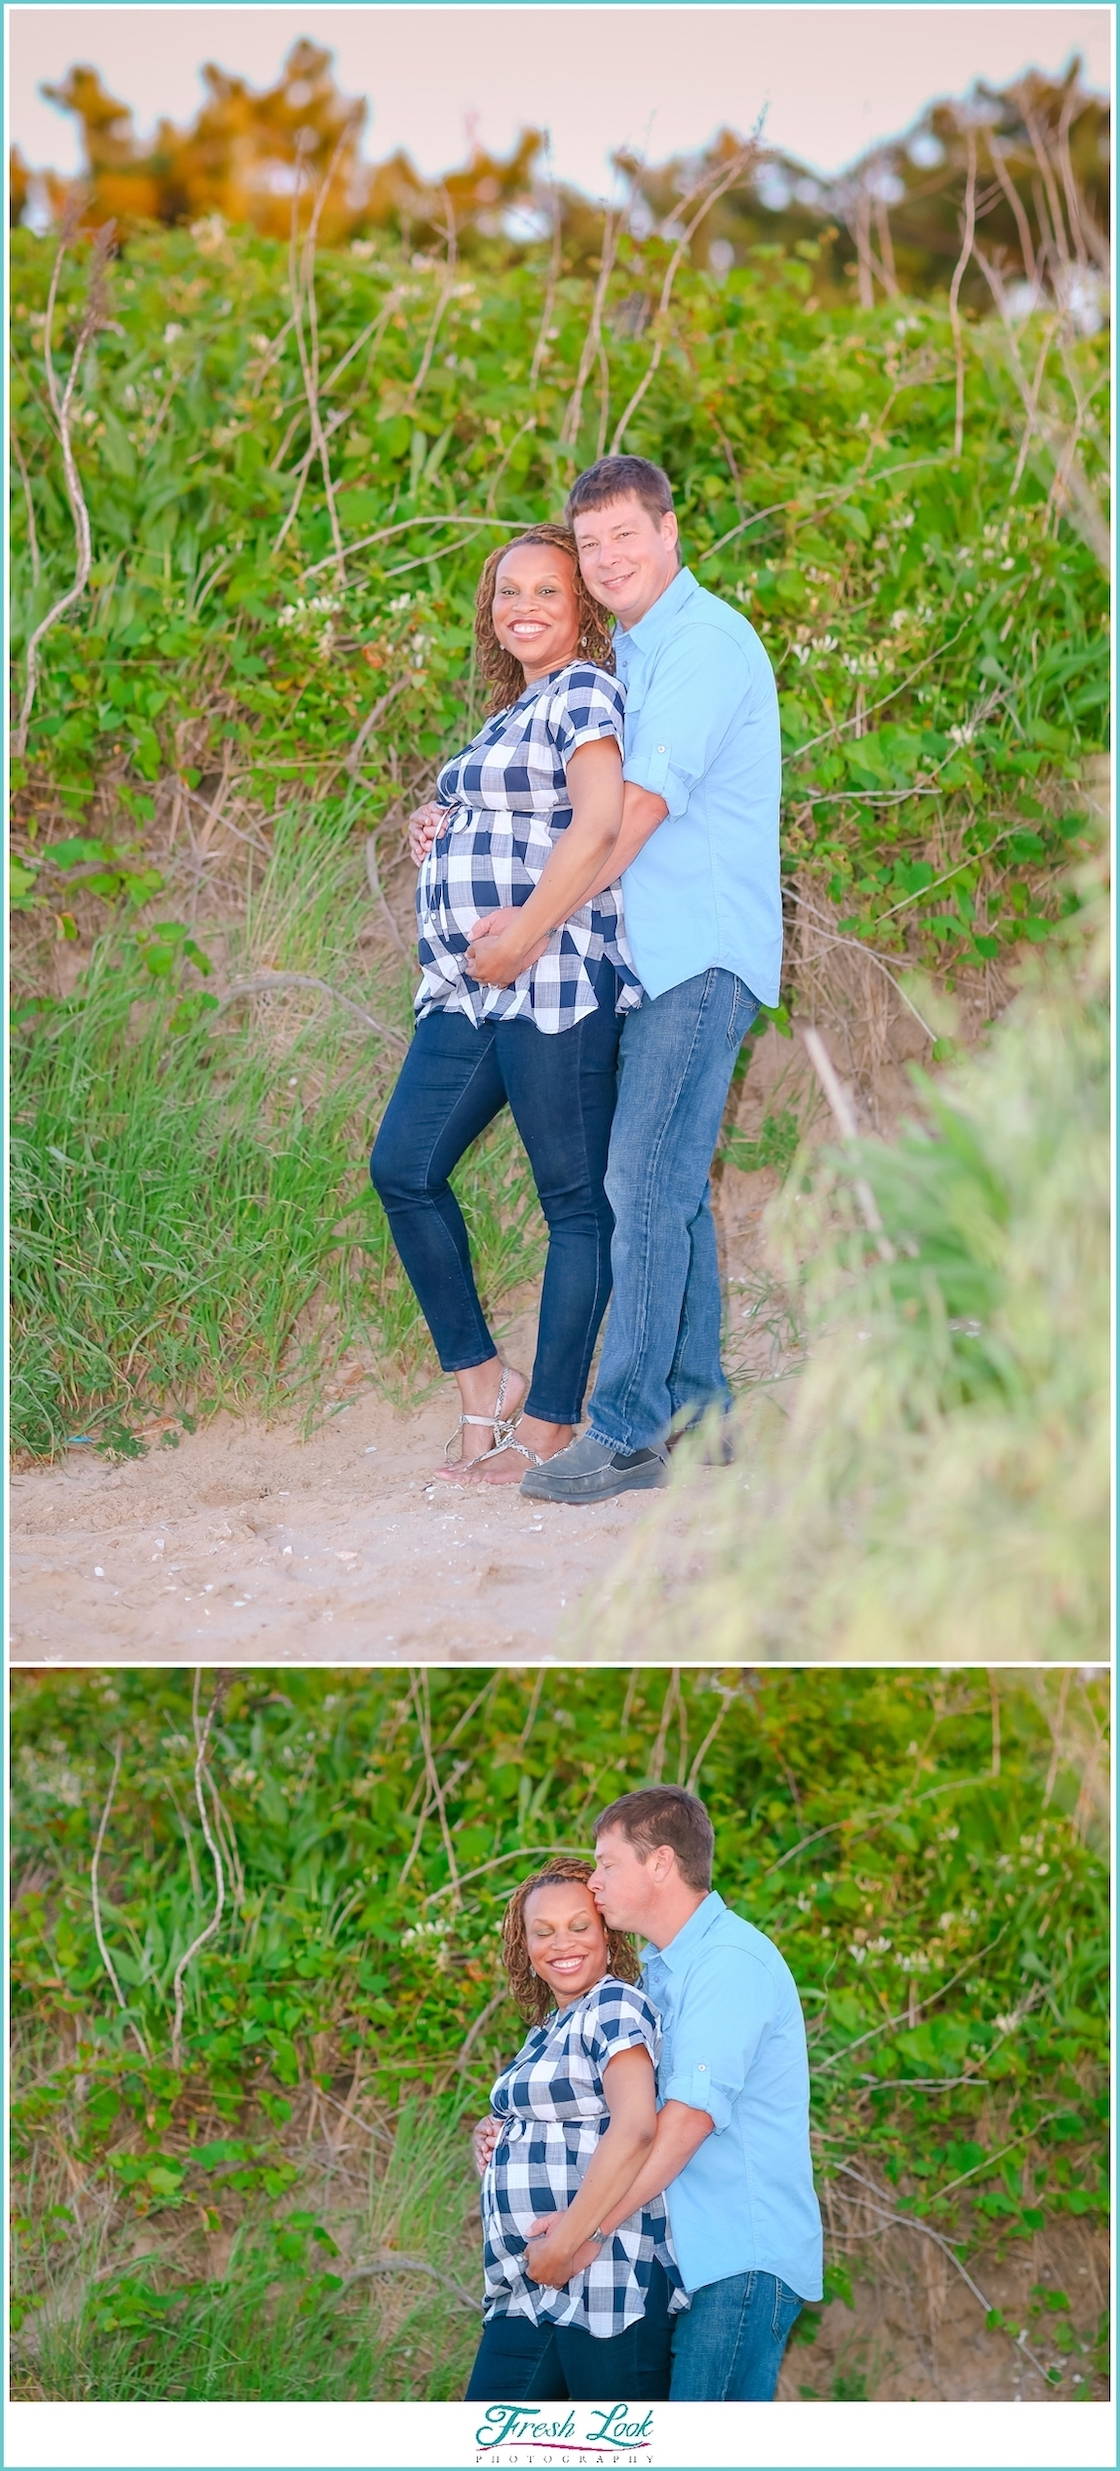 Norfolk maternity photoshoot